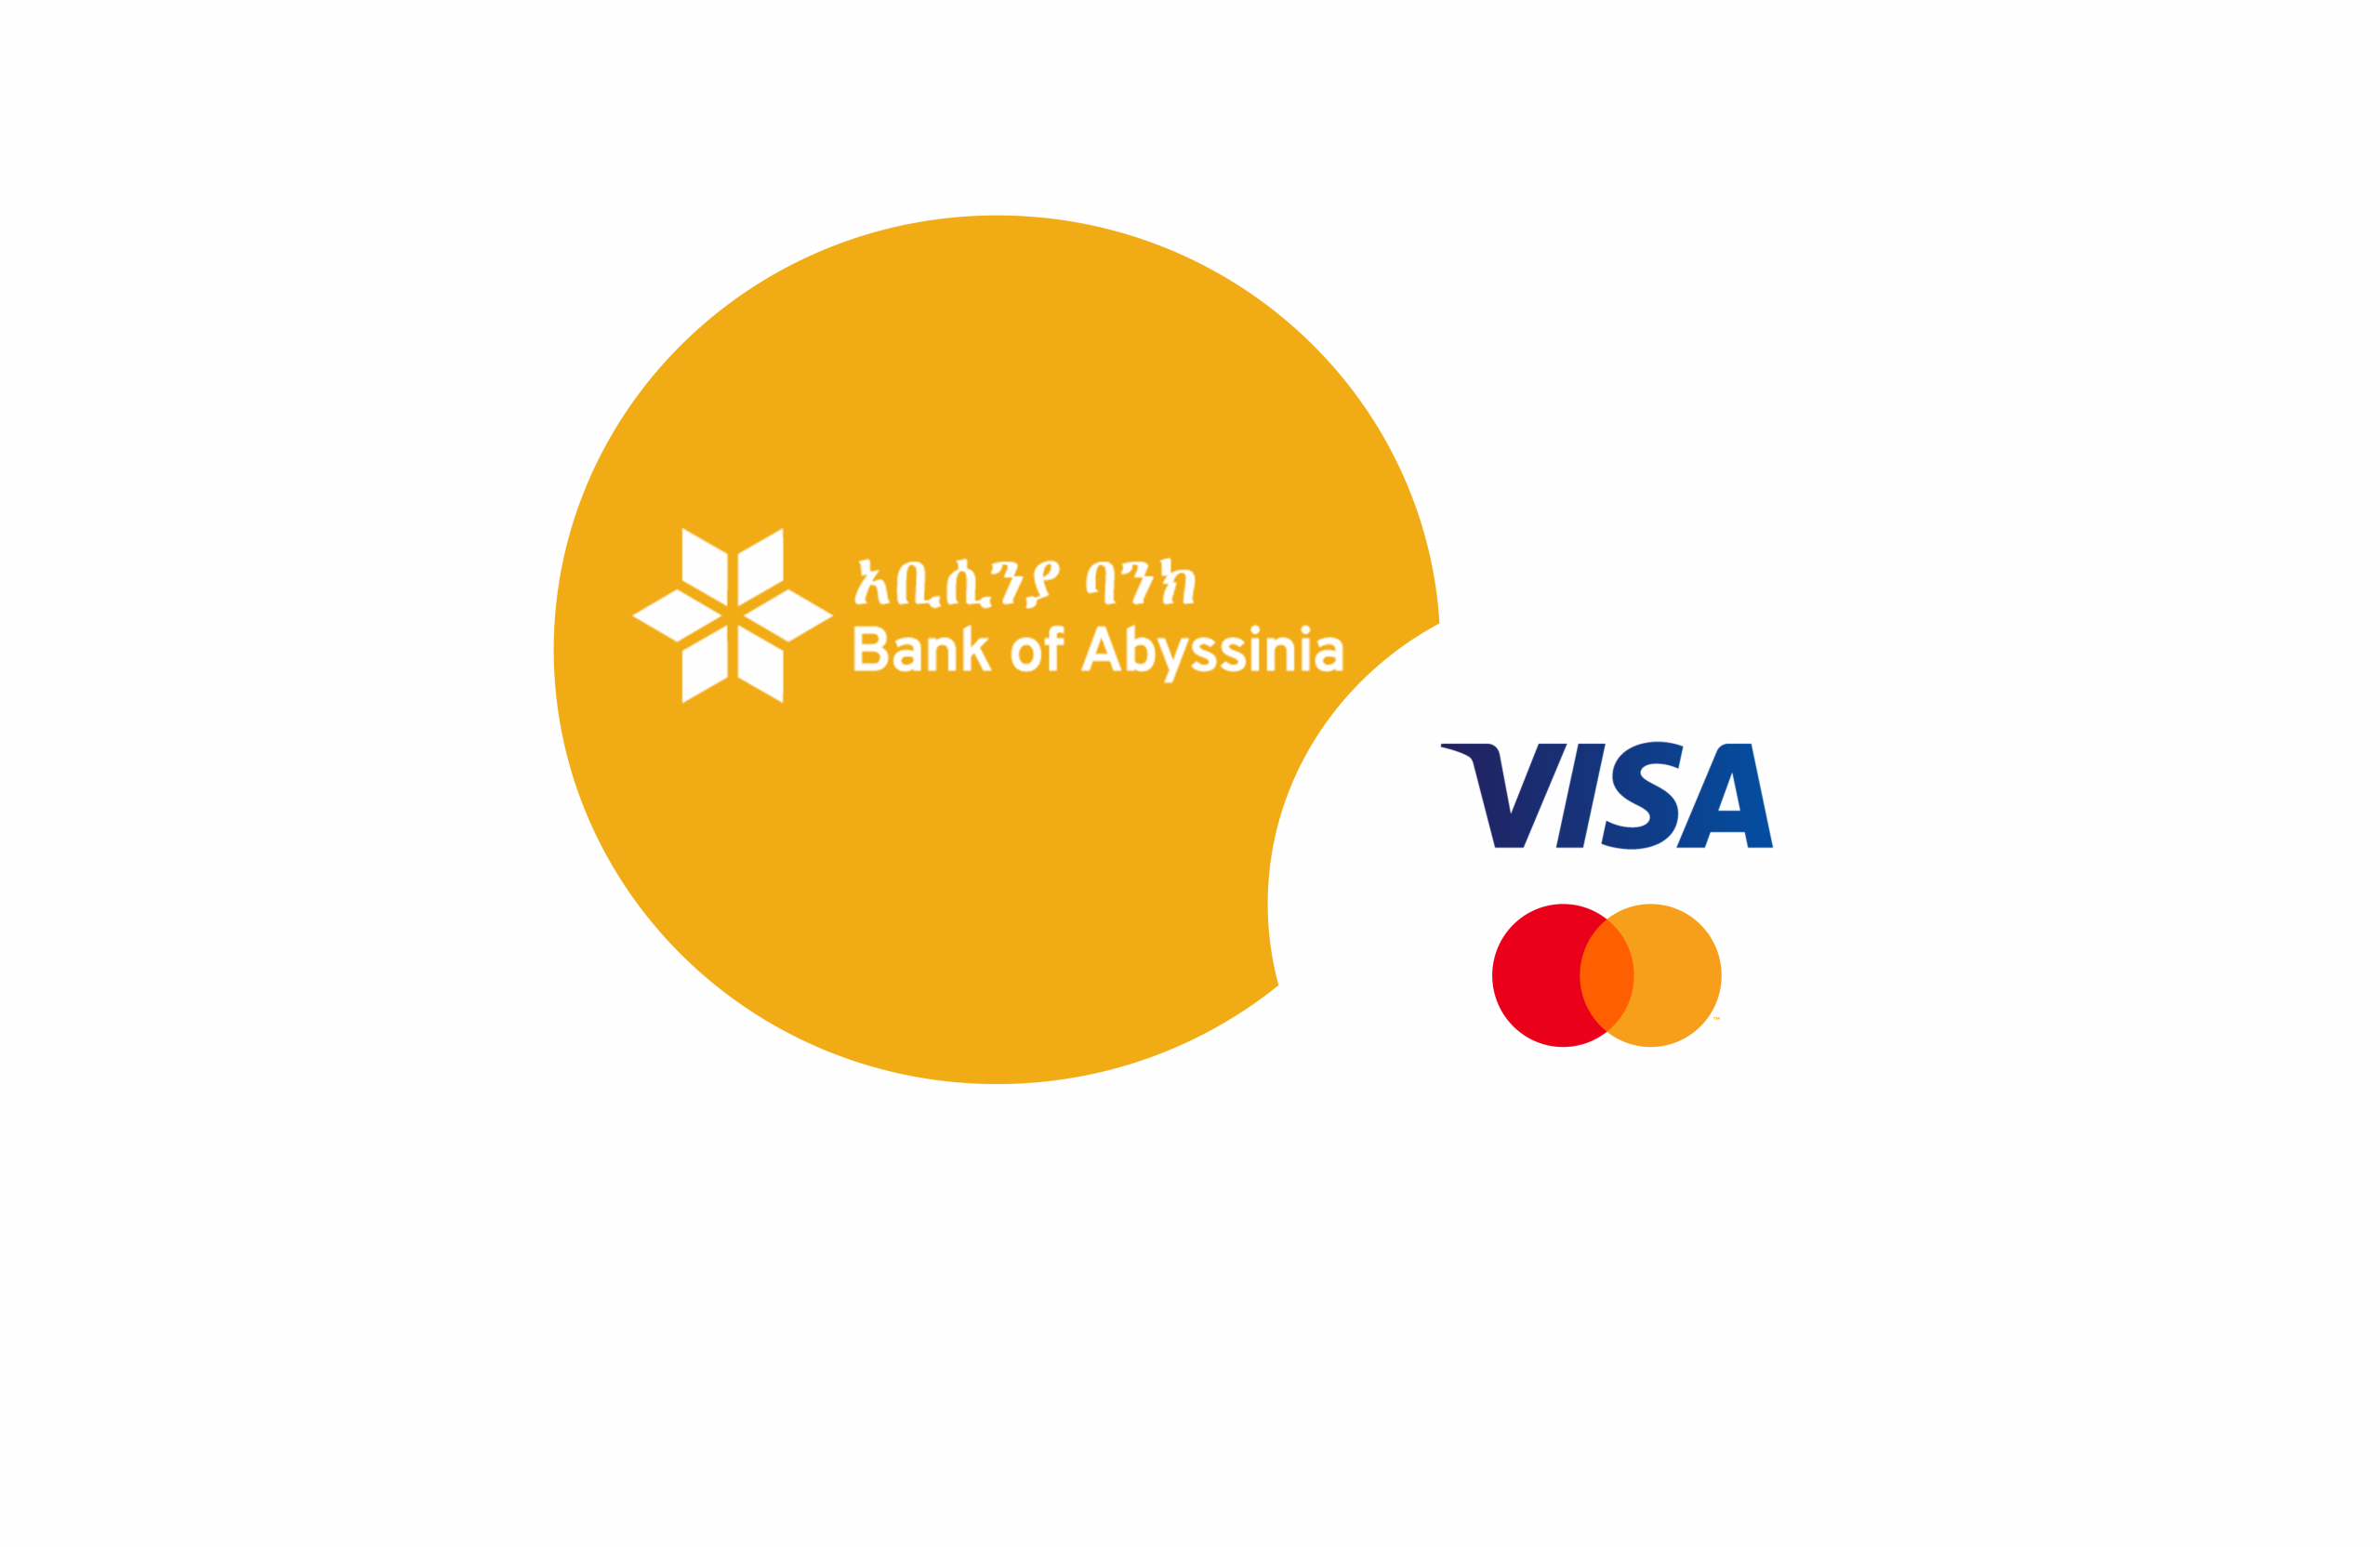 E-commerce payment gateway bank in Ethiopia